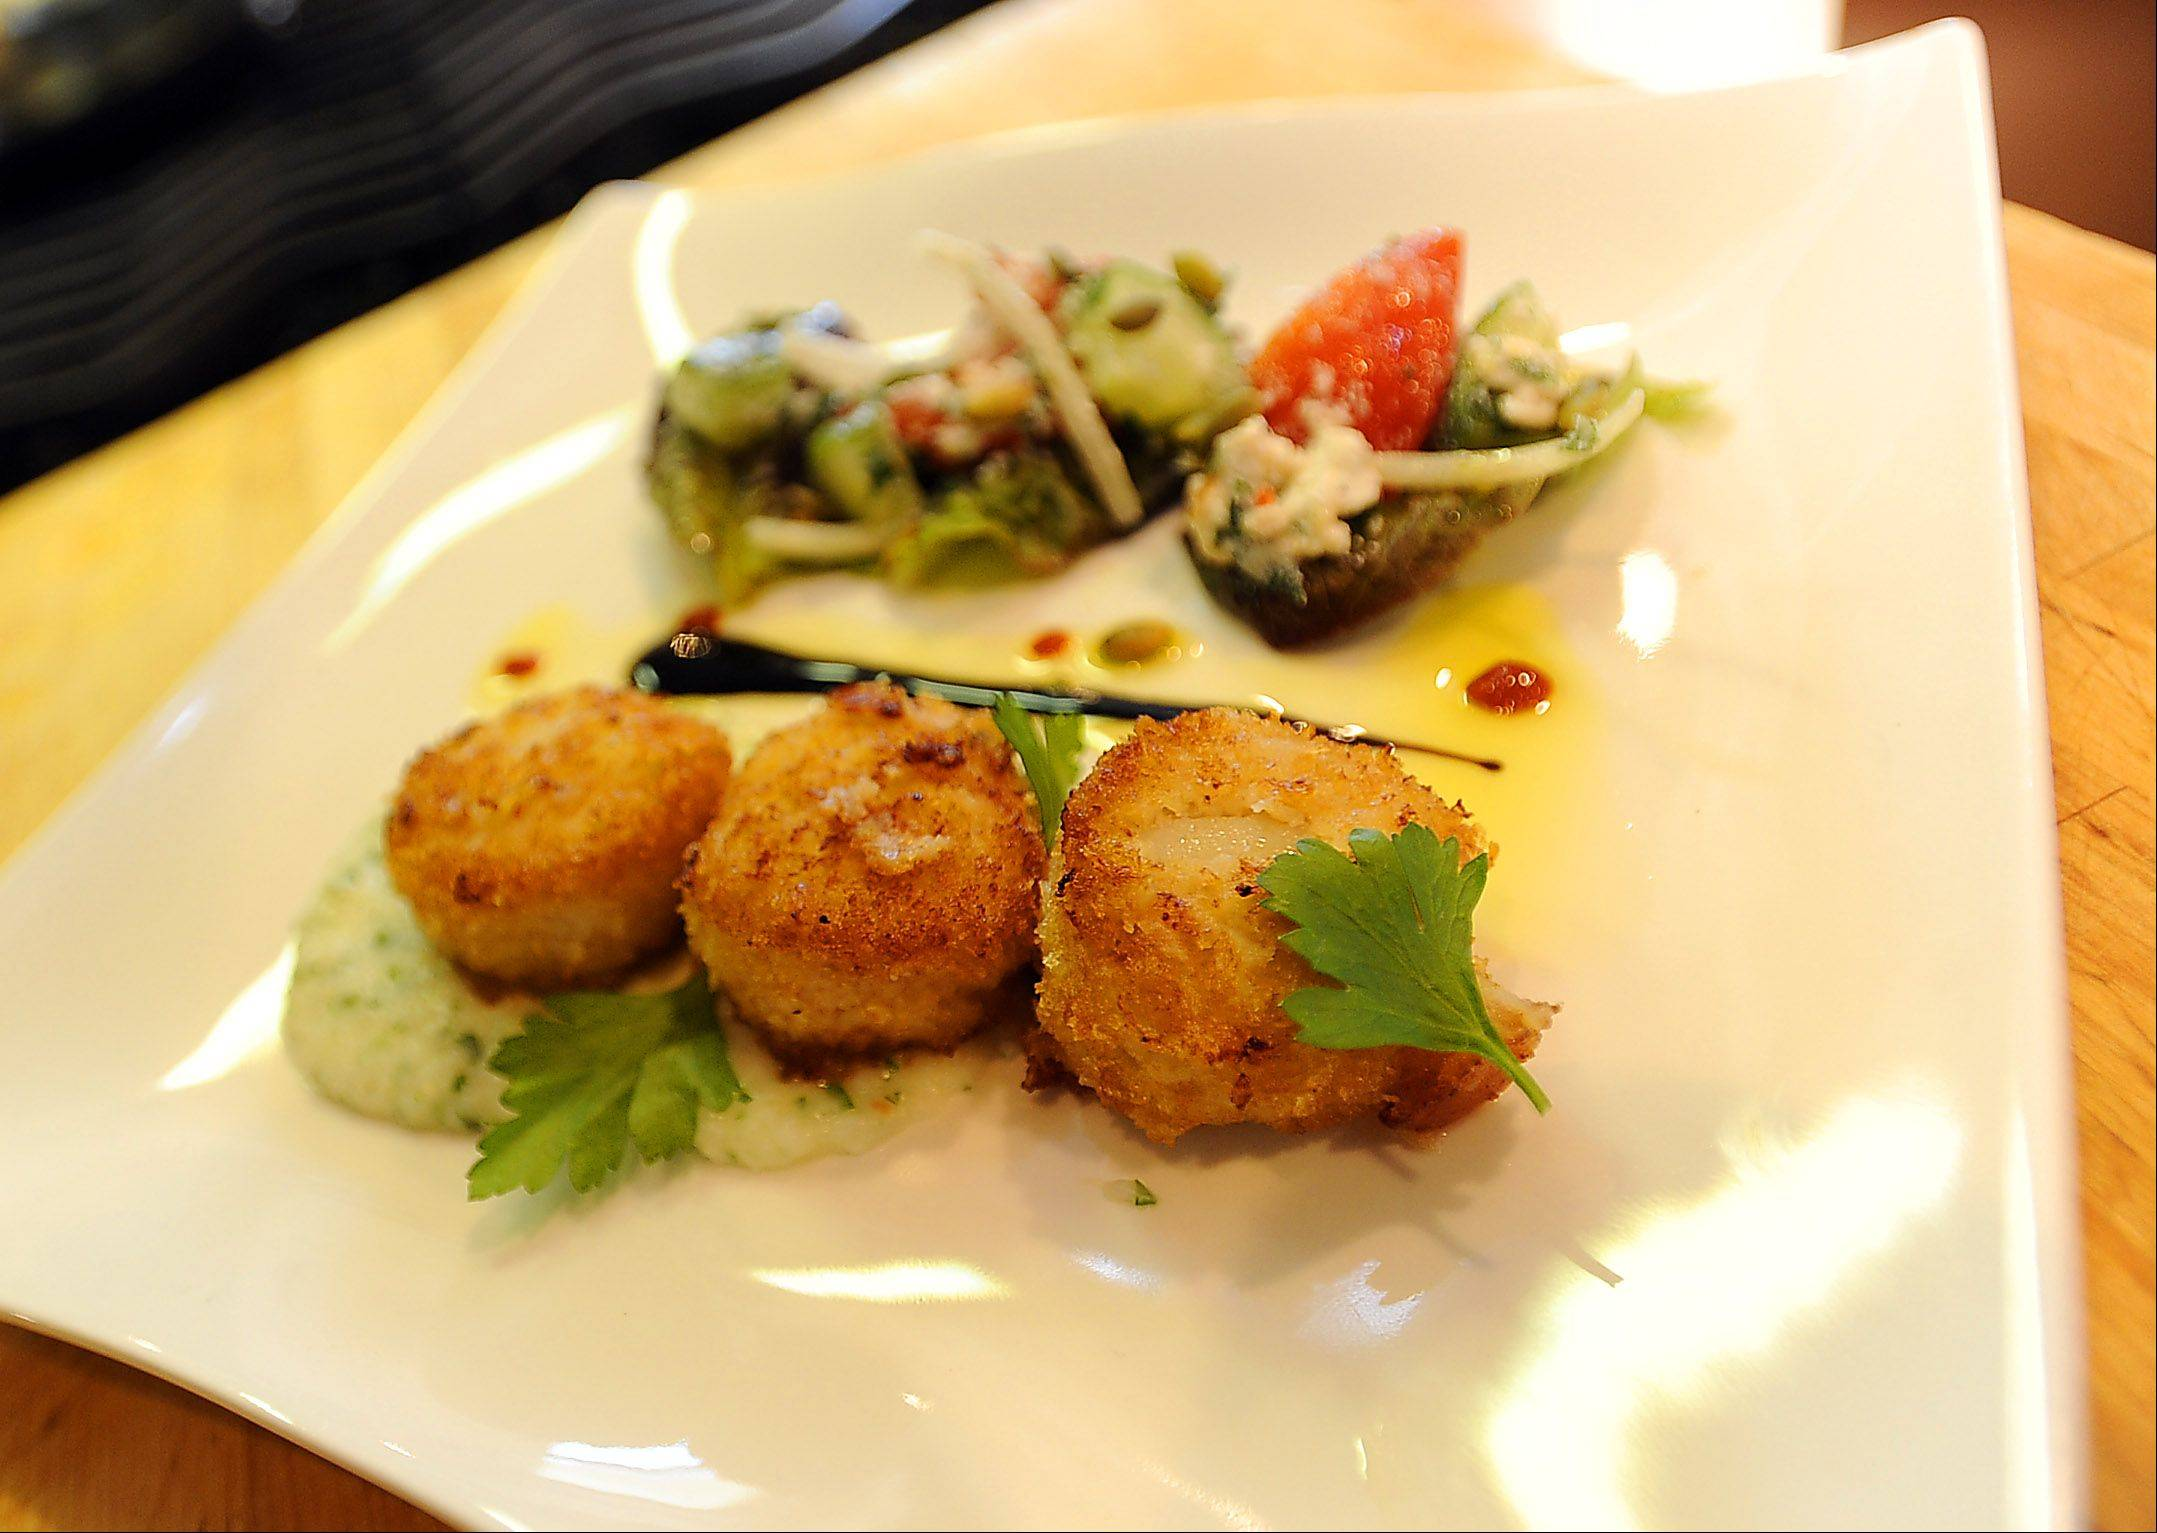 Chef John Reed of Customized Culinary Solutions in Skokie says crispy scallops with herb grits and Greek salad with toasted pumpkin seeds is quick and family-friendly dinner.